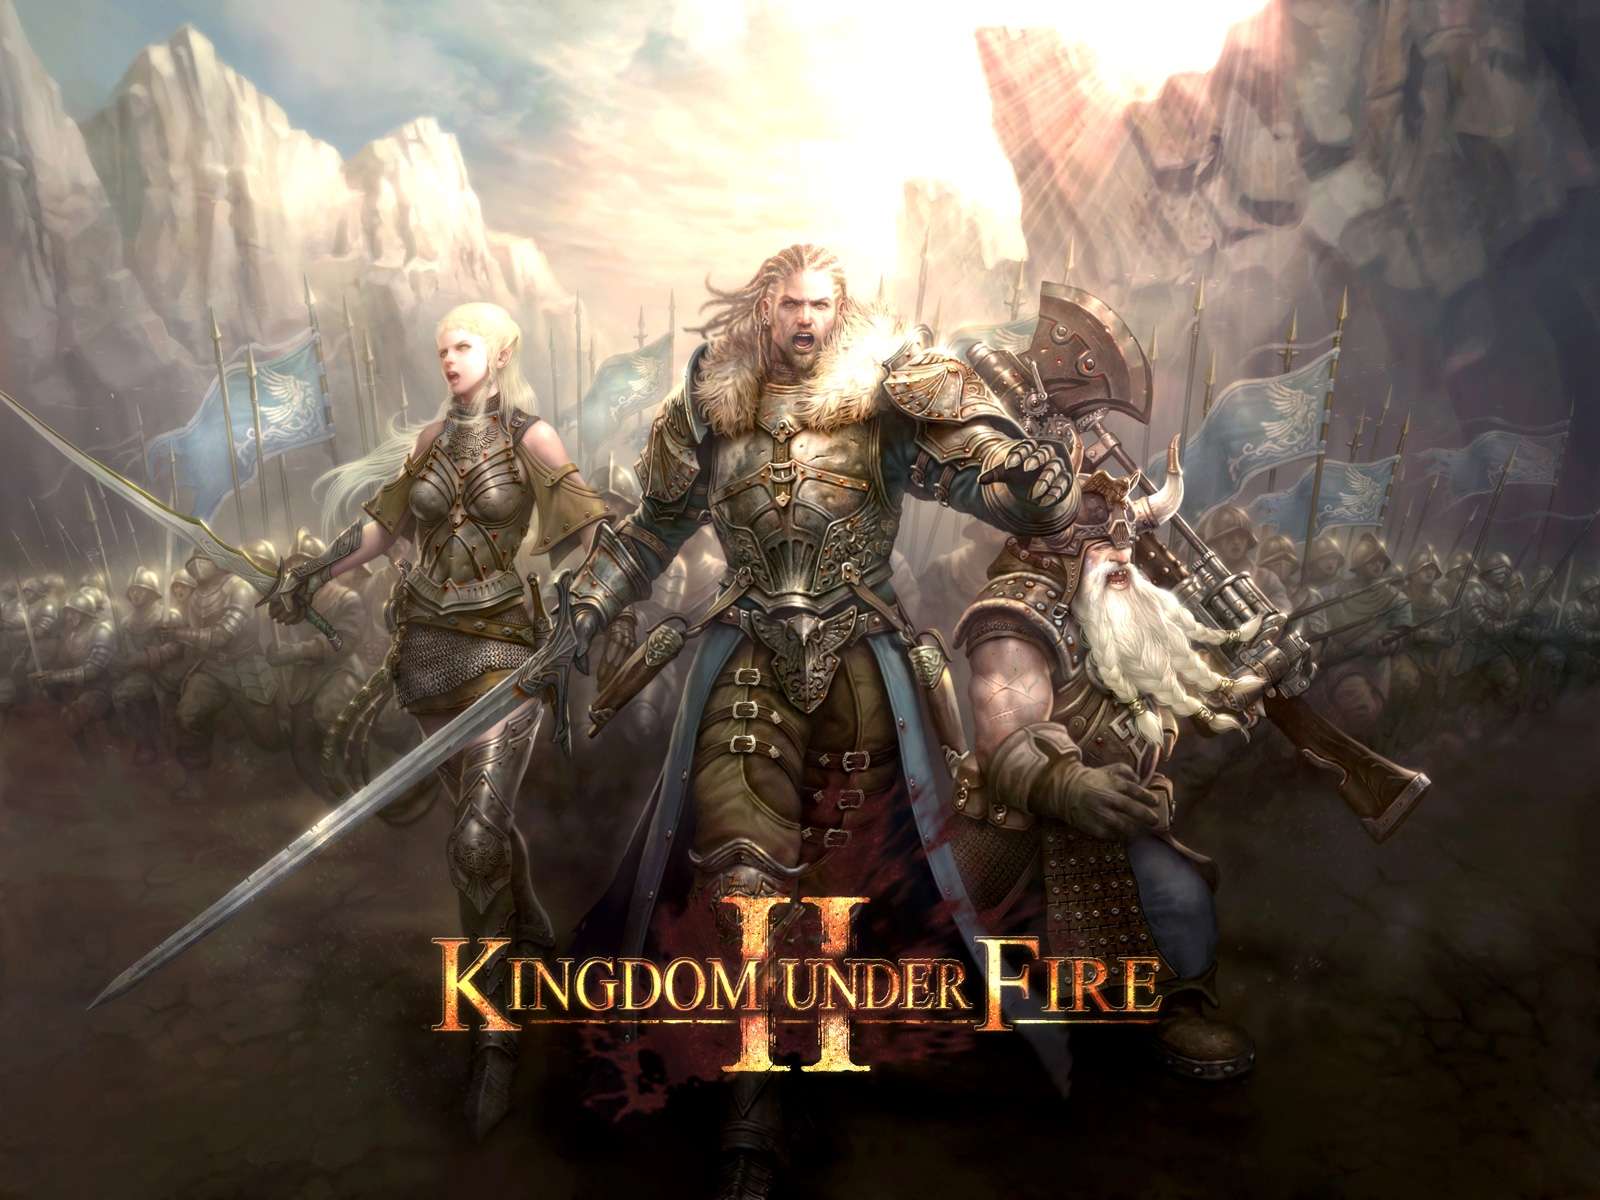 worldfungames.ru - Kingdom Under Fire 2